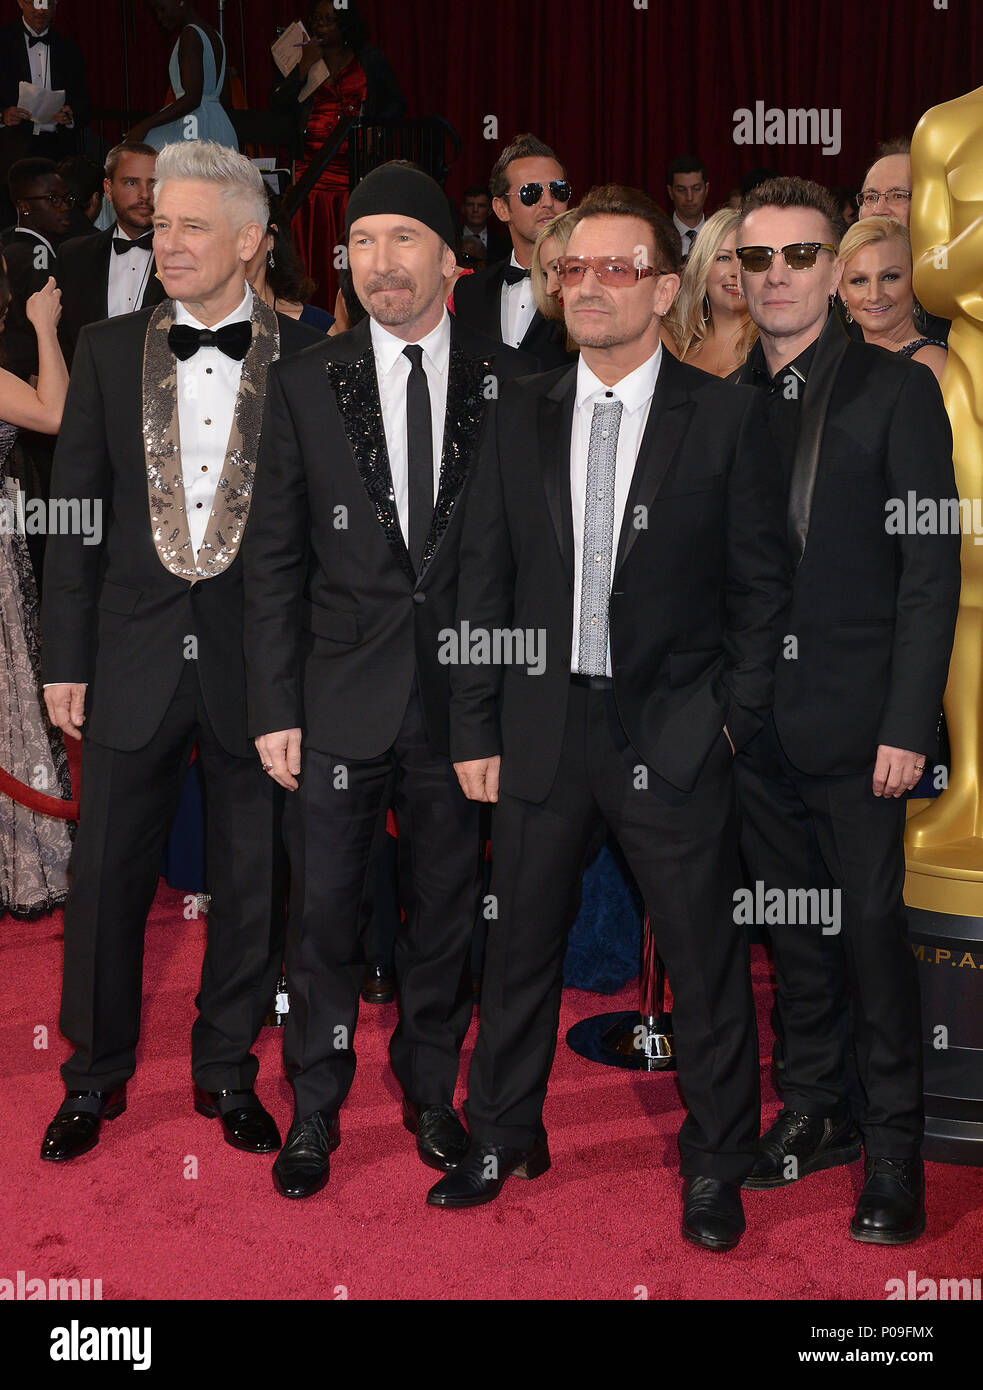 Carpet U2 Bono And U2 Band 593 Arriving At The 86th Oscars 2014 At The Dolby